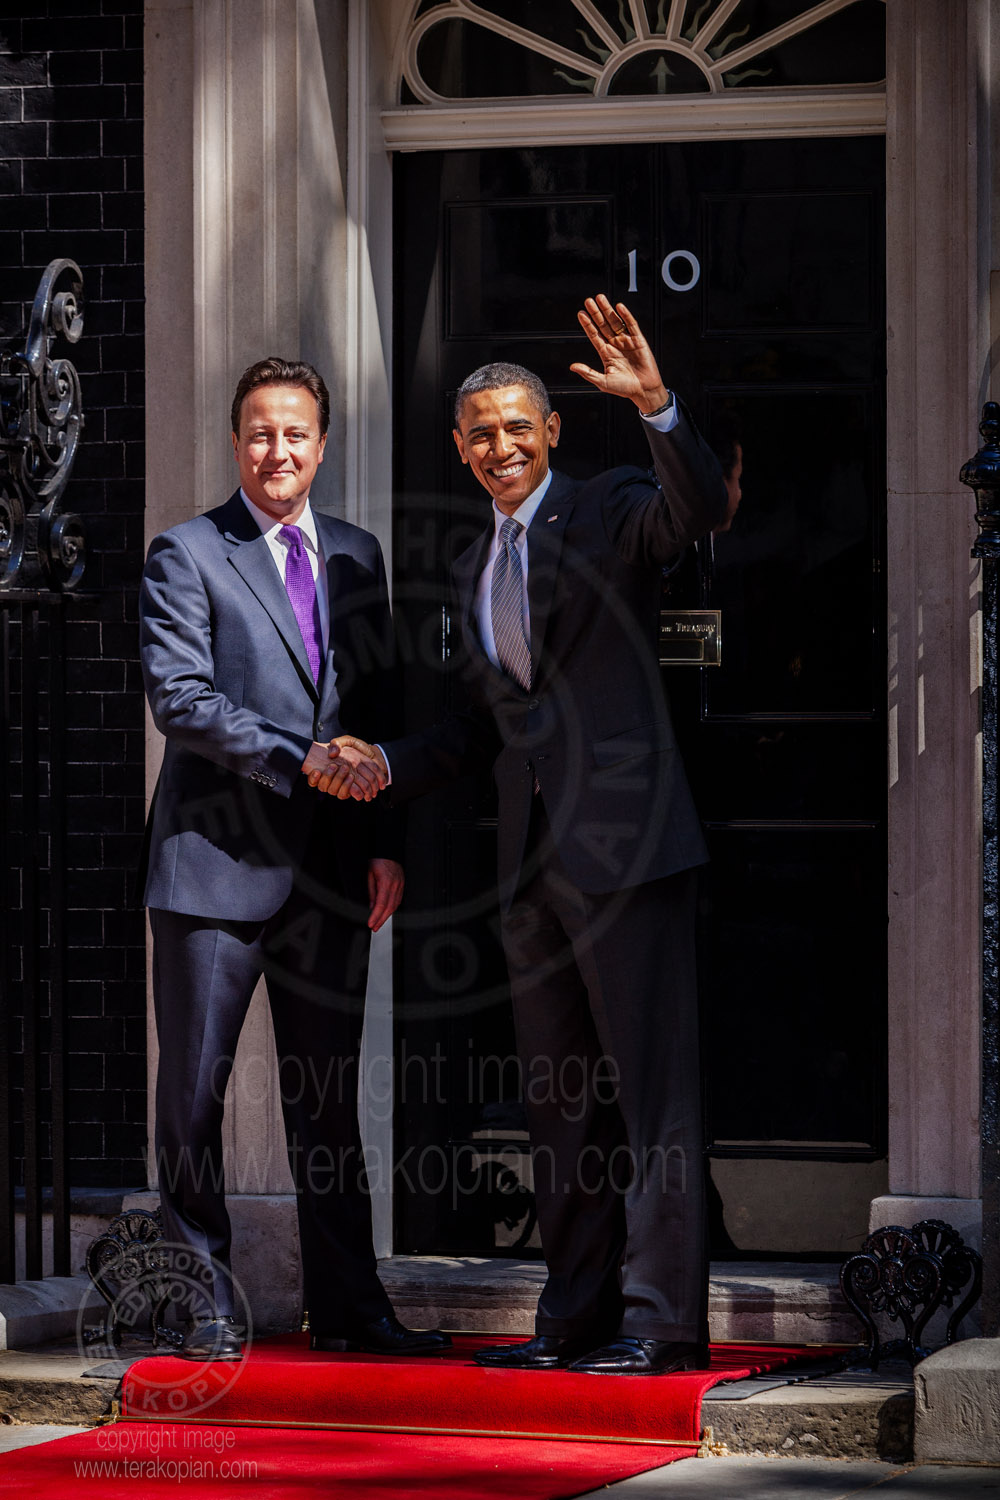 State visit to Britain by US President Barack Obama.  Britain's Prime Minister David Cameron greets the US President Barack Obama, welcoming him to 10 Downing Street.  May 25 2011. Photo: Edmond Terakopian